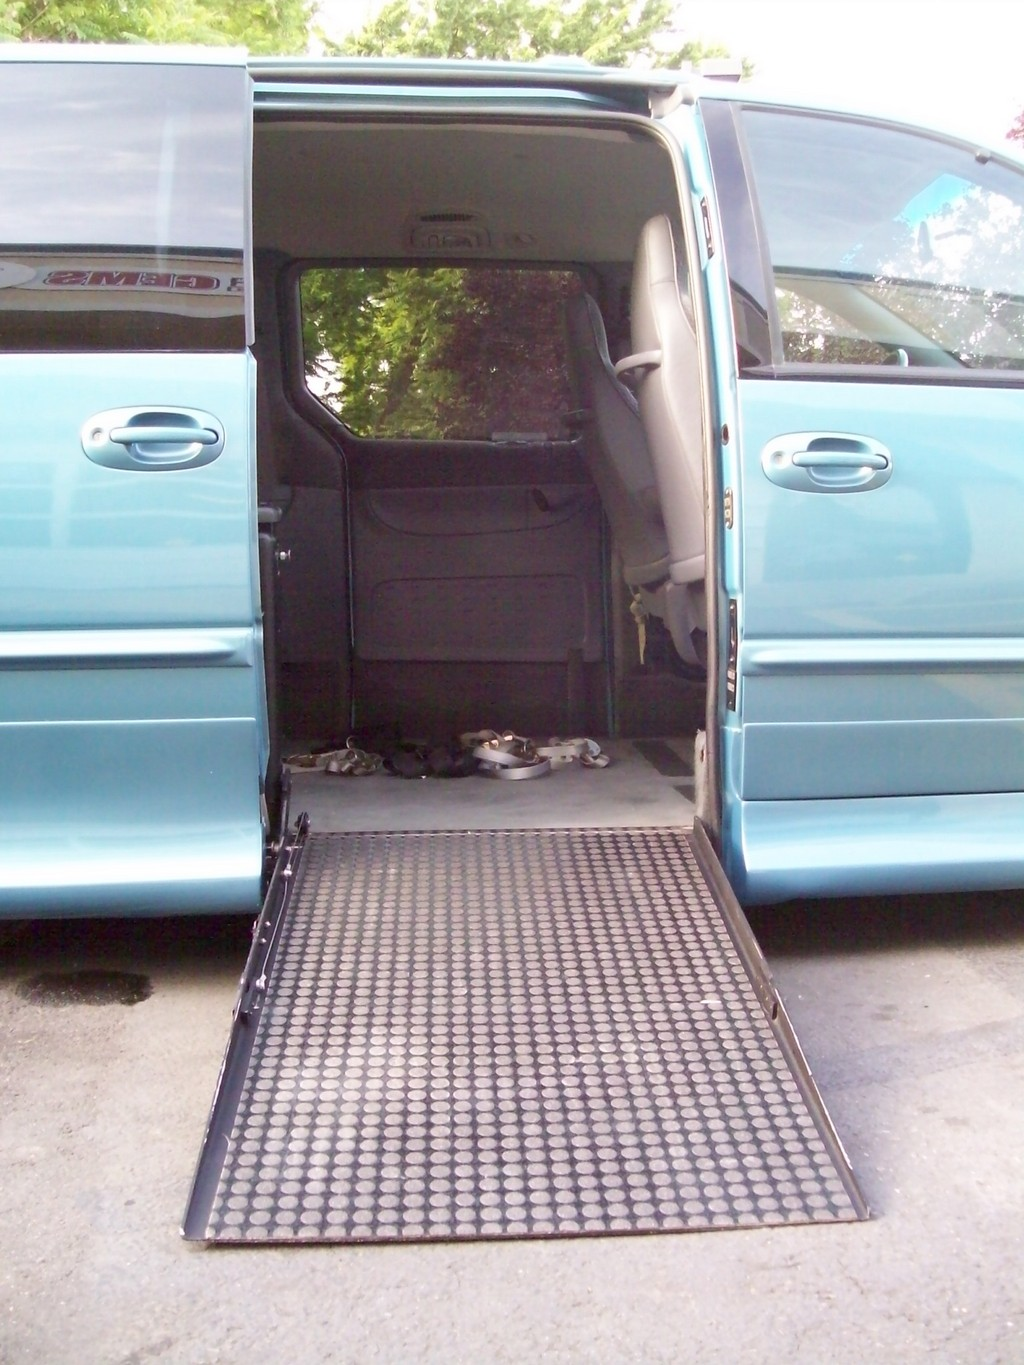 wheelchair vans sale owner, sprinter van wheel chair, shoulder seat belt for wheelchair van, wheelchair vans sale owner